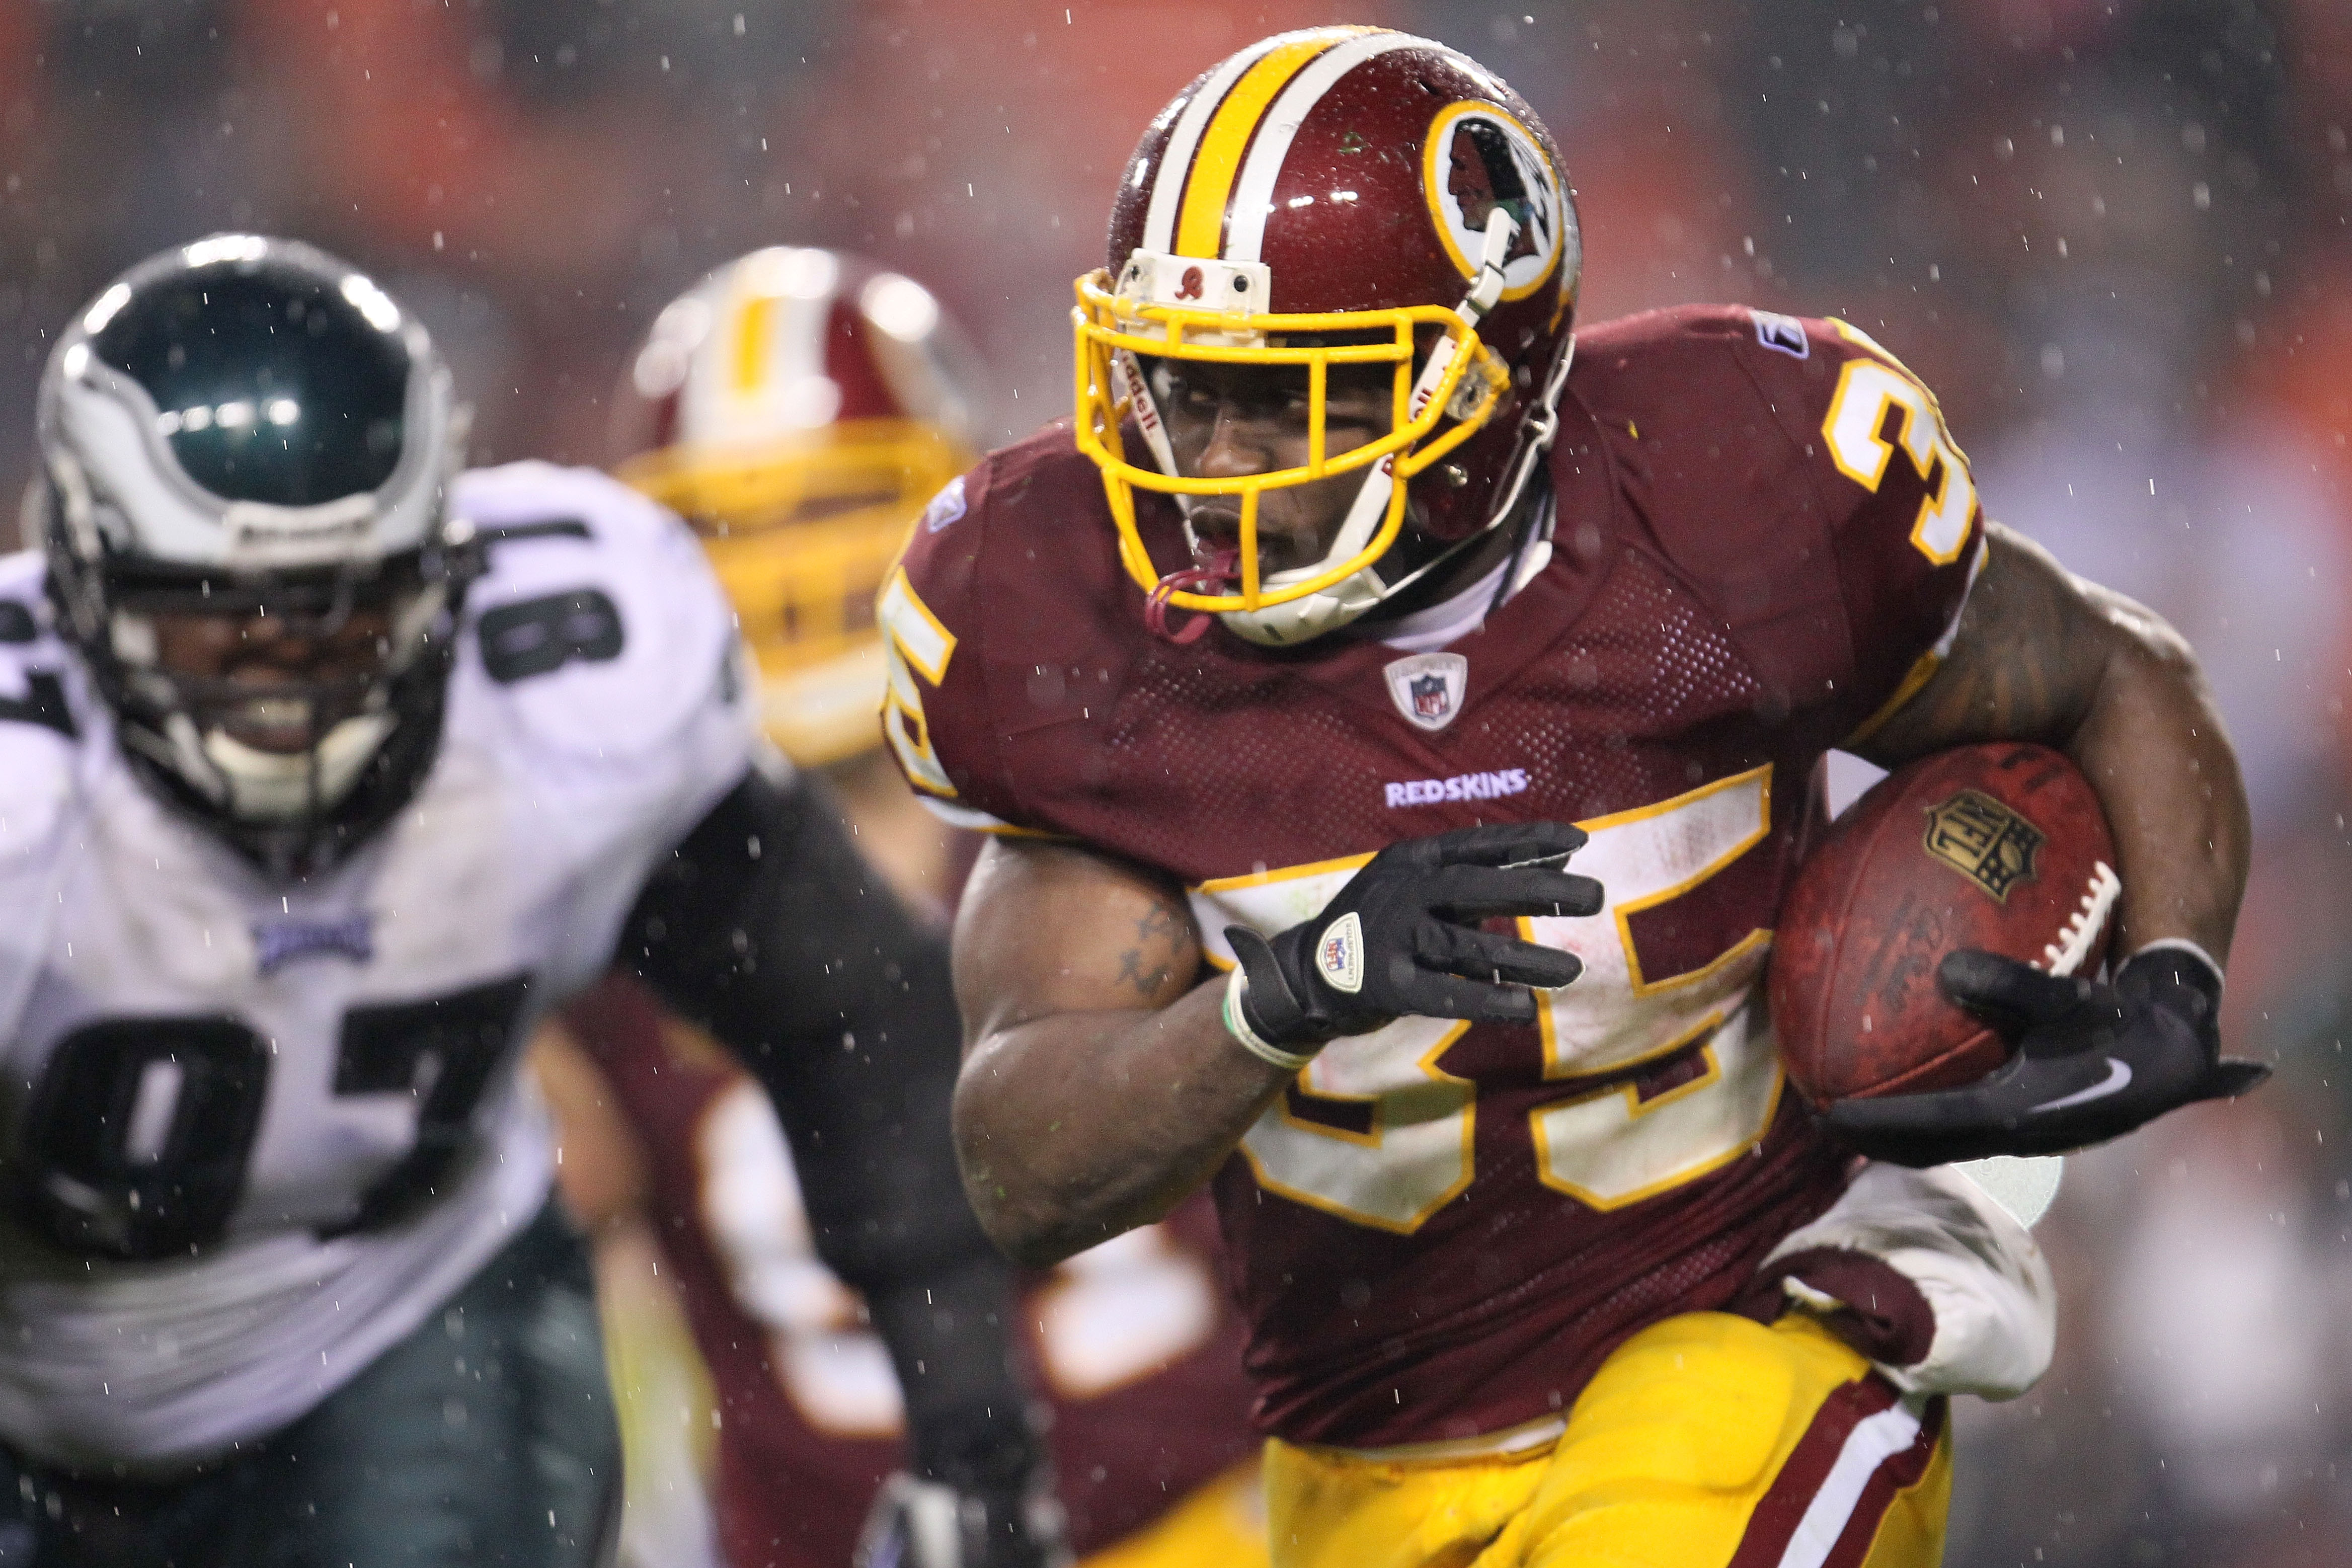 LANDOVER, MD - NOVEMBER 15: Keiland Williams #35 of the Washington Redskins makes a break against the Philadelphia Eagles on November 15, 2010 at FedExField in Landover, Maryland.  (Photo by Chris McGrath/Getty Images)